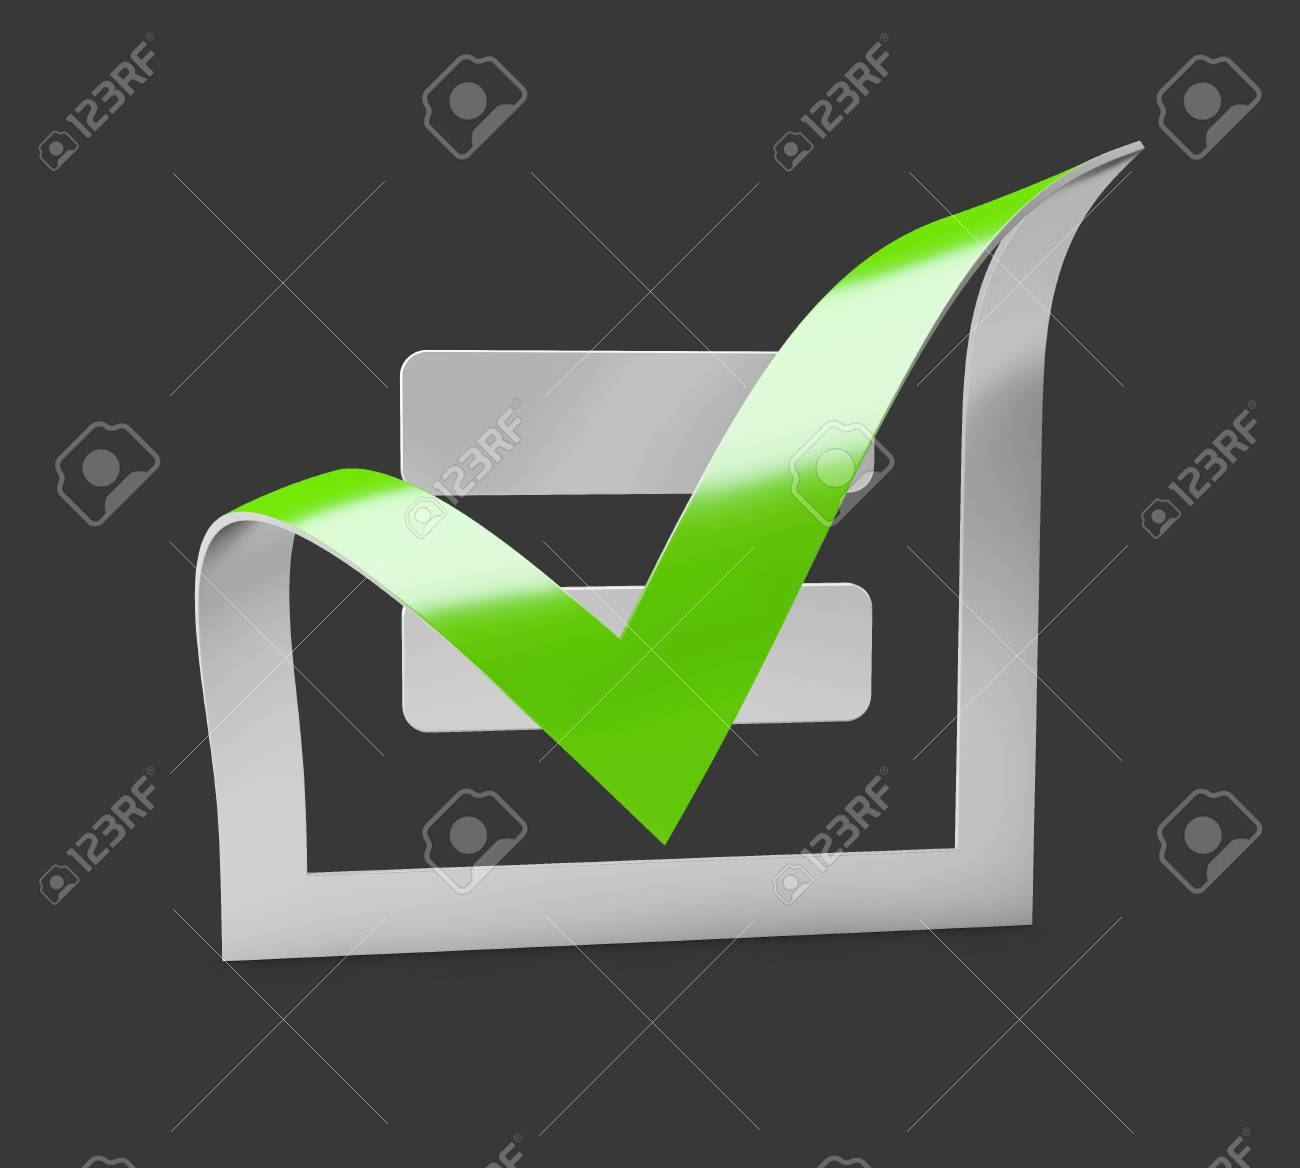 Green check mark icon tick symbol in green color 3d illustration green check mark icon tick symbol in green color 3d illustration stock illustration biocorpaavc Image collections